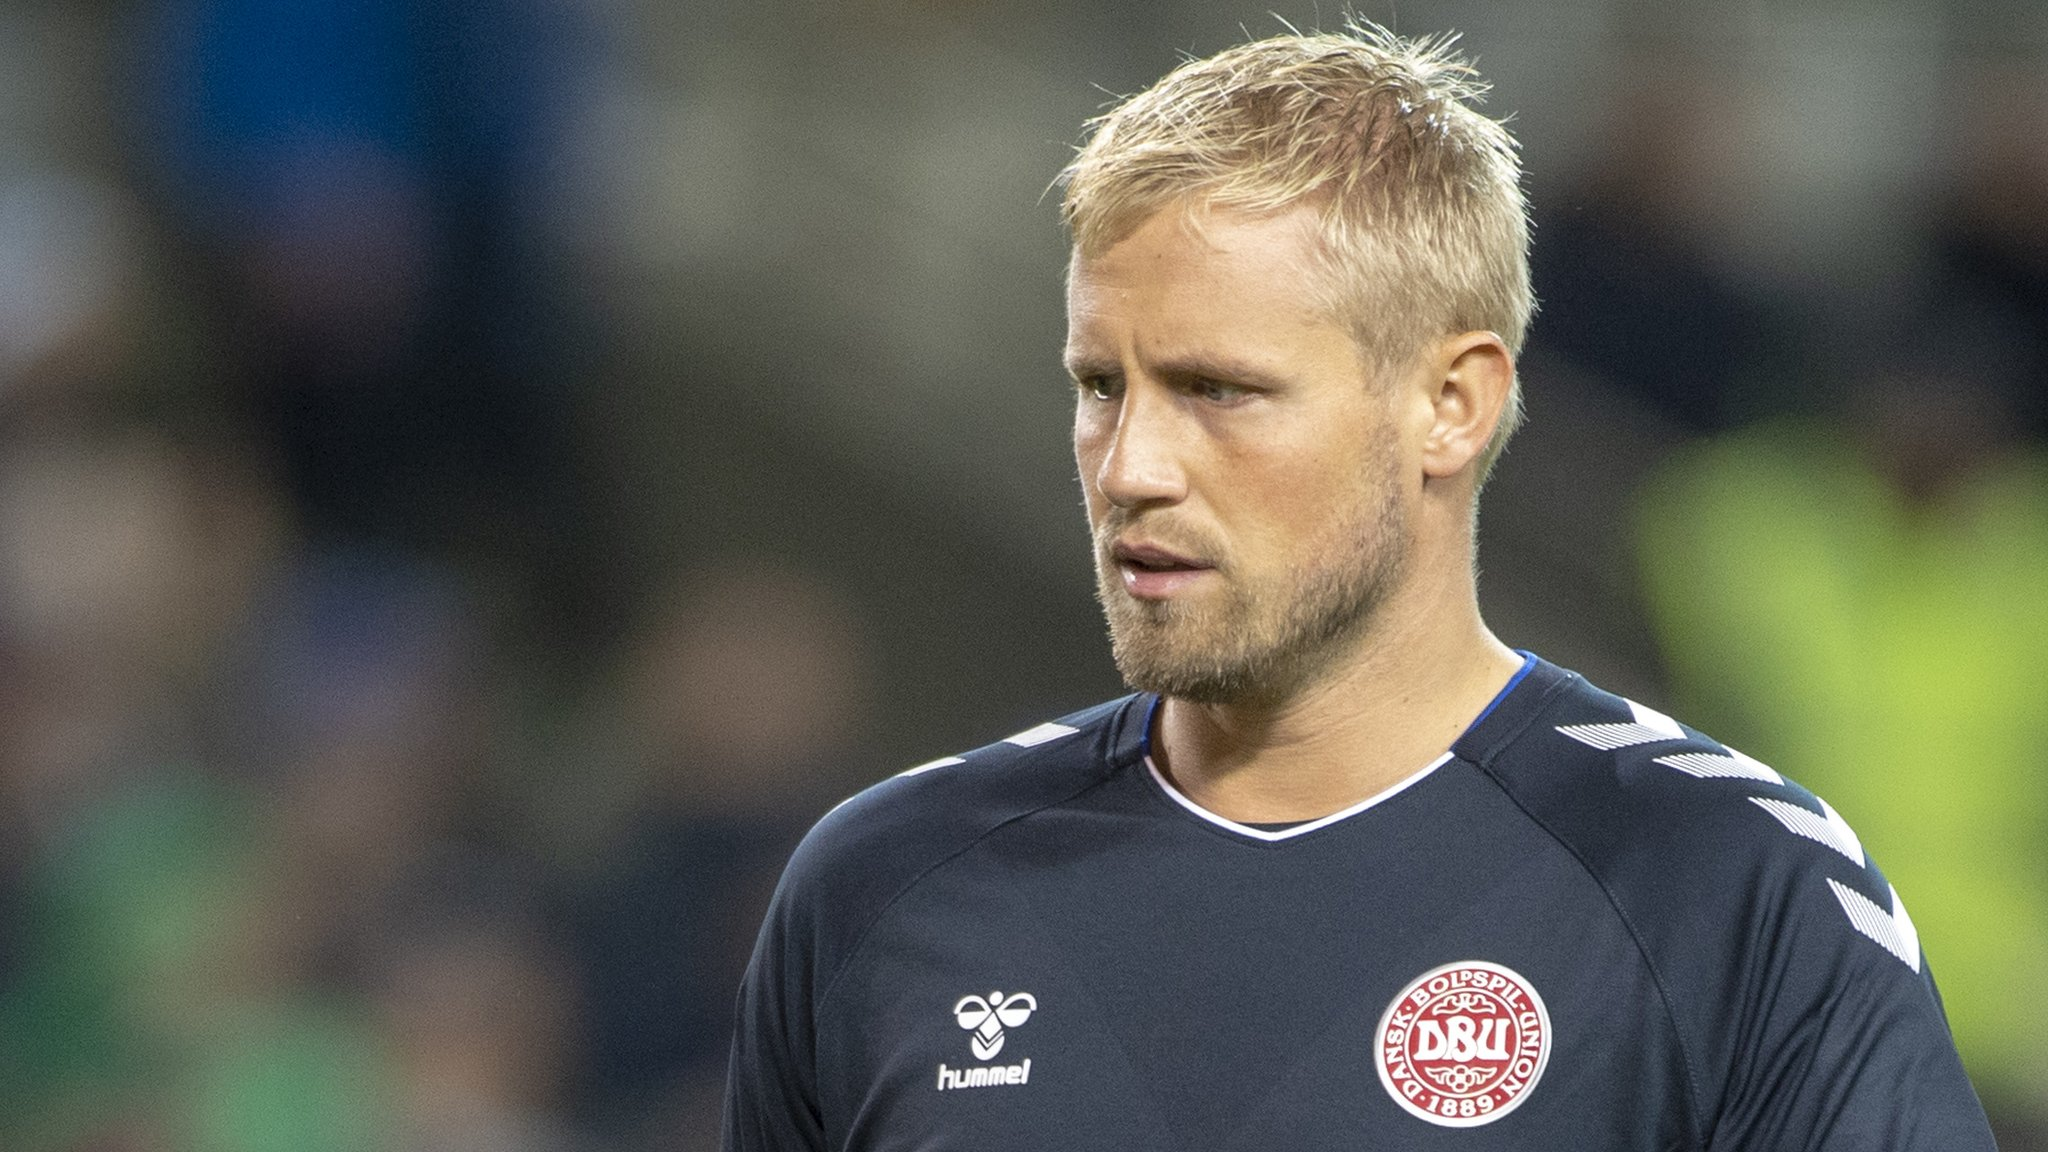 Cardiff 'not the place' Schmeichel wanted to return to